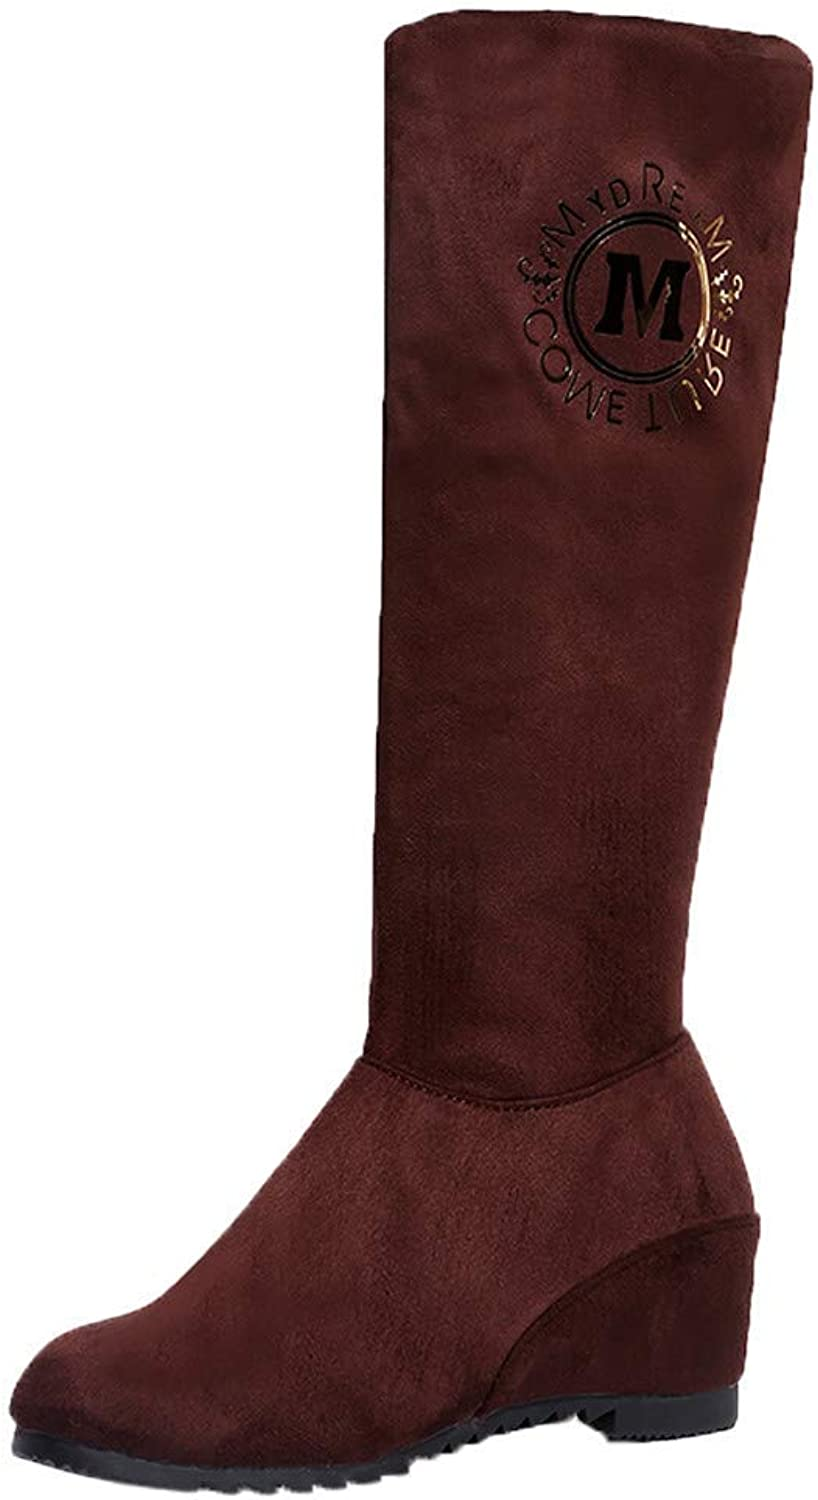 JaHGDU Women Wedge High Heel Martin Boots in Hose Boots Long Boots Knee High Leisure Elegant Cosy Wild Tight Super Casual Quality for Womens